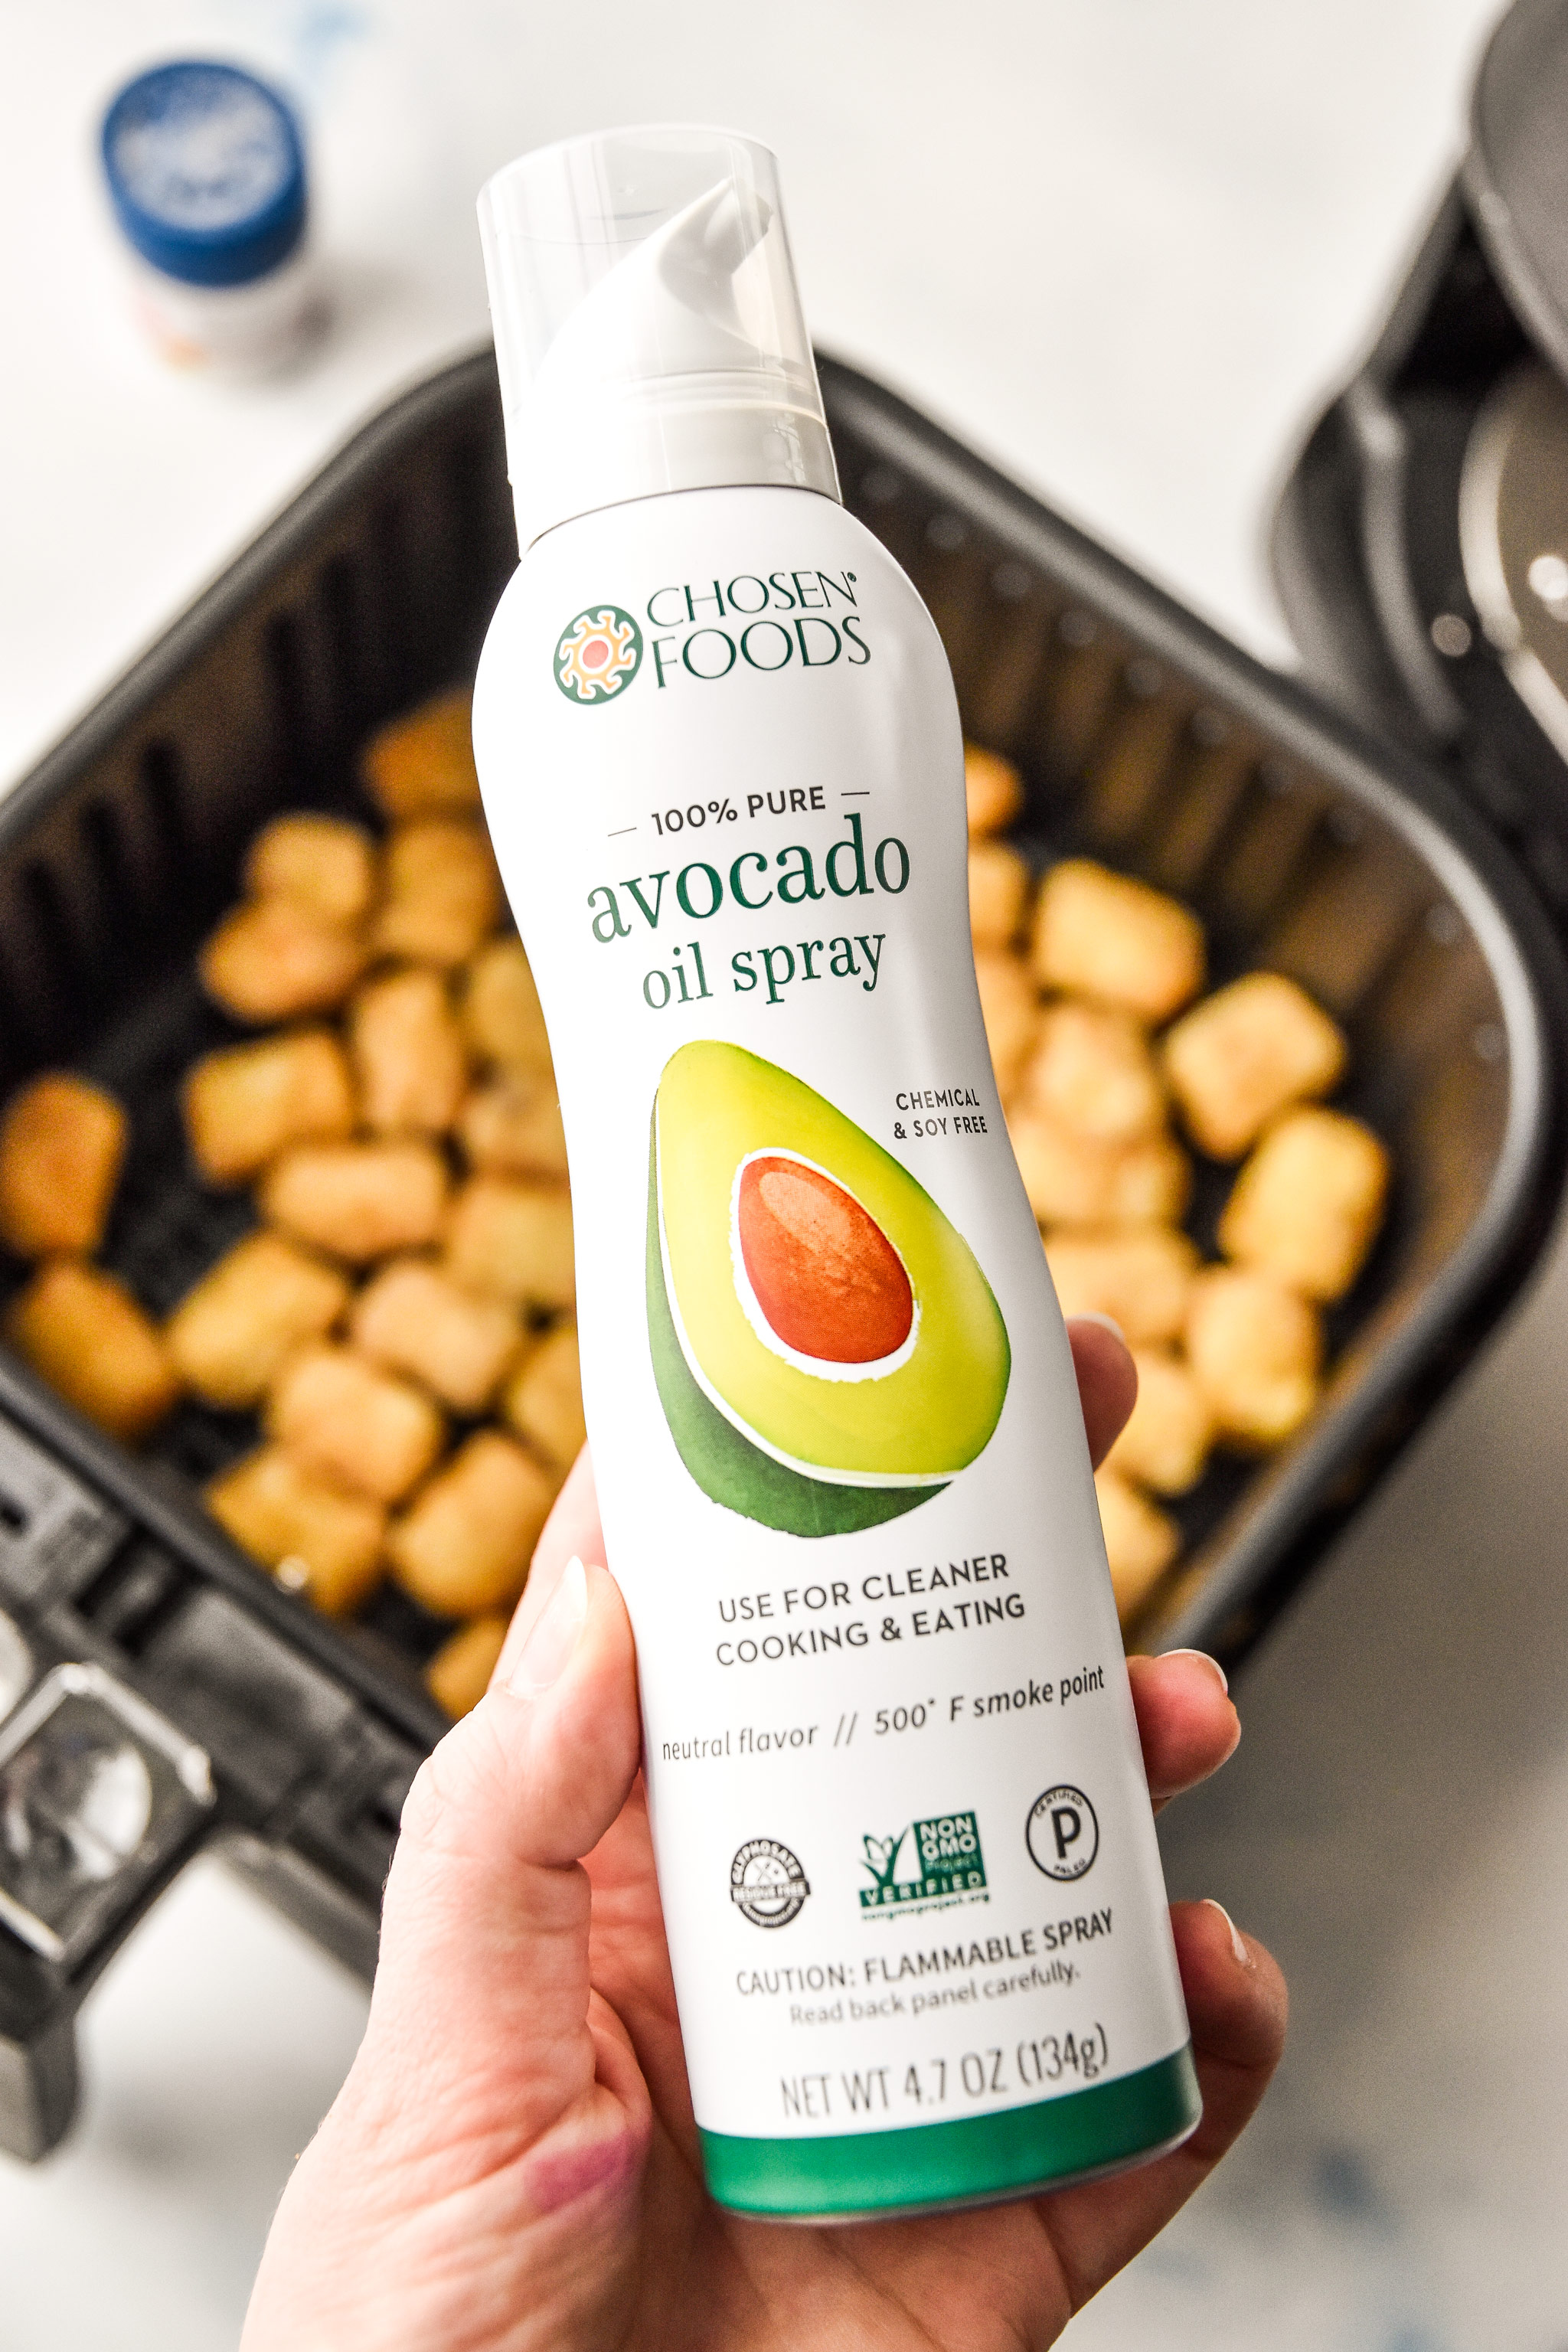 chosen foods avocado spray oil used for making tater tots in an air fryer